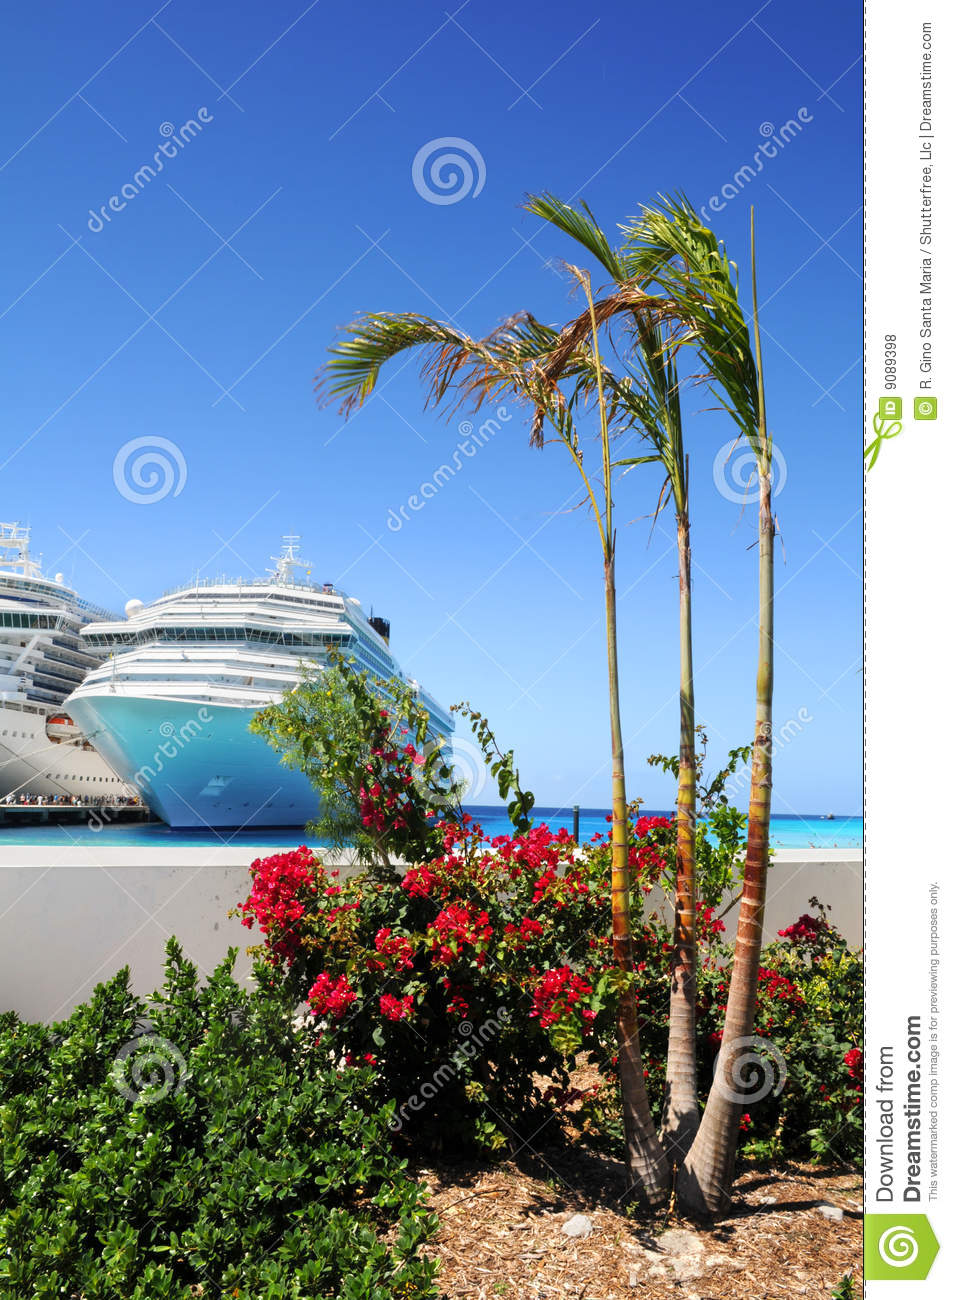 Tropical island with cruise ships royalty free stock photos image